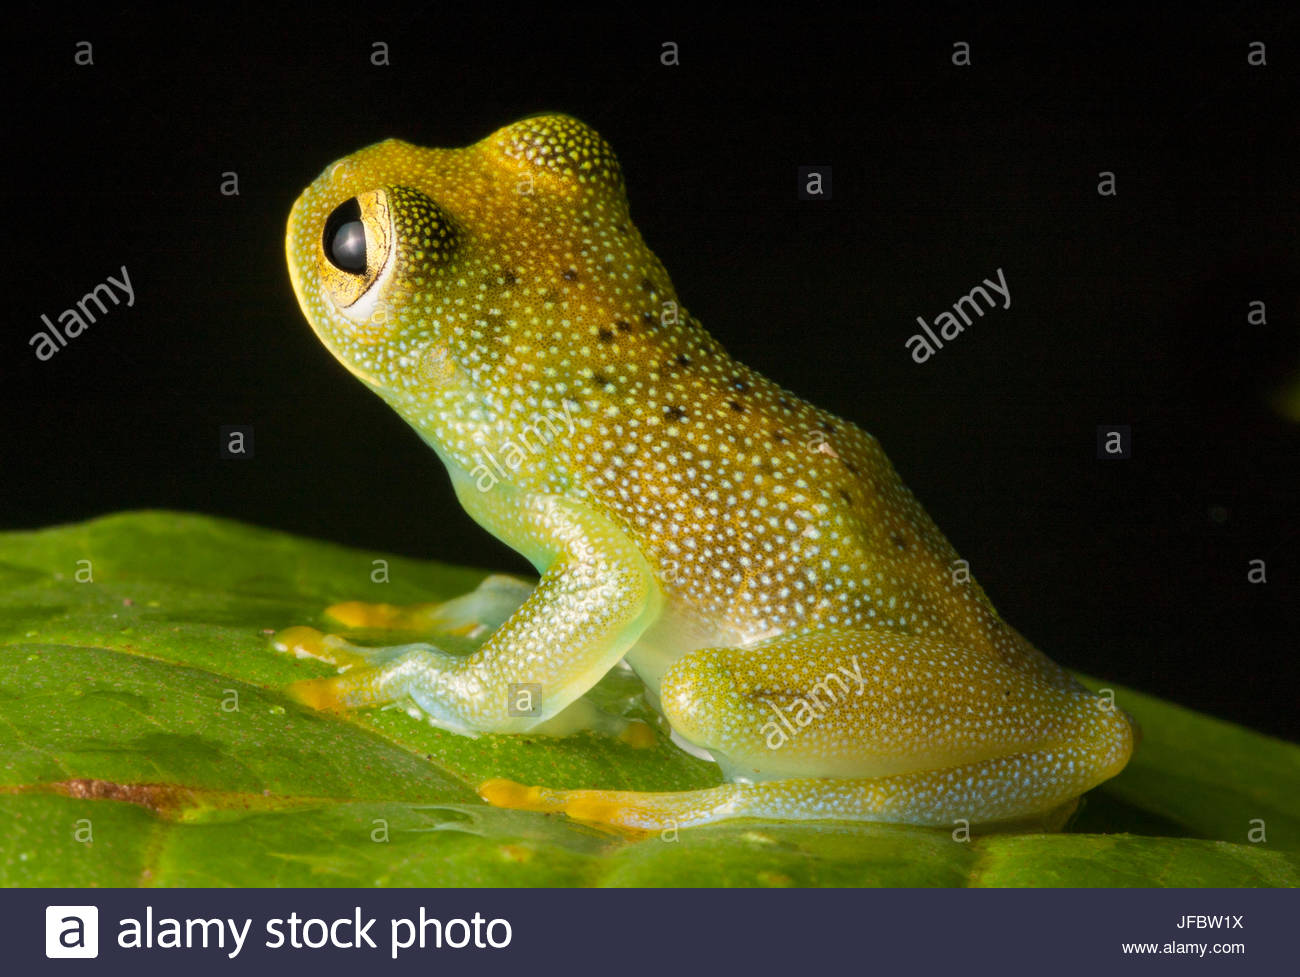 Portrait of a granular glass frog, Cochranella granulosa. Stock Photo